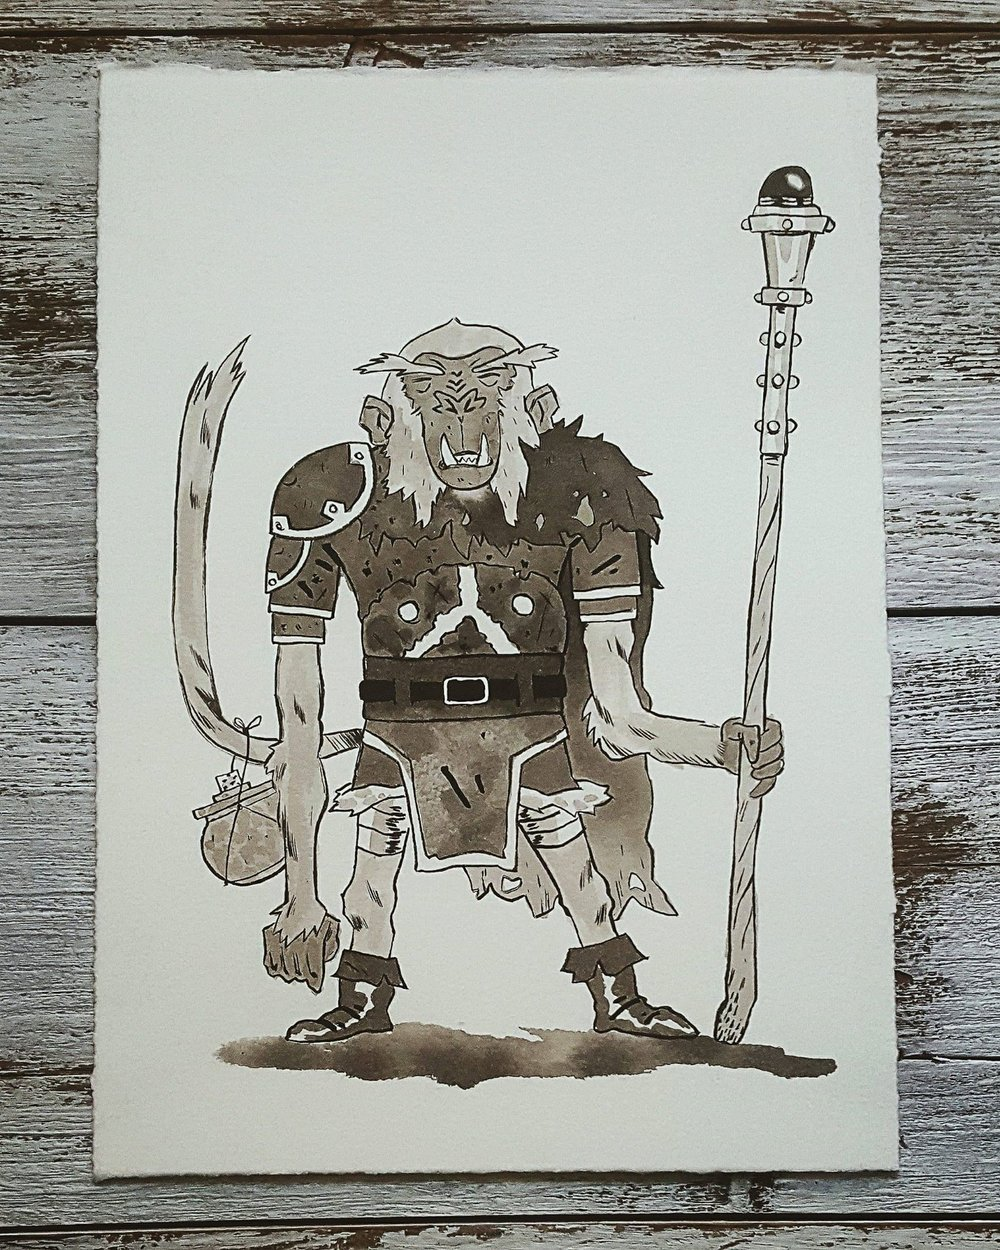 A Knight a Day No. 33, Monkey Mage - After picking up a sparkling stone he found in a stream, he was imbued with intelligence and magical ability.A Knight a Day No. 34, Hero's Apprentice - Being a hero means being able to use several weapons and magical modalities expertly. Heroes have to be ready for whatever threat they may face next. At any heroes guild you may find young heroes in training lugging around swords, staffs, bows, spellbooks, and potions.